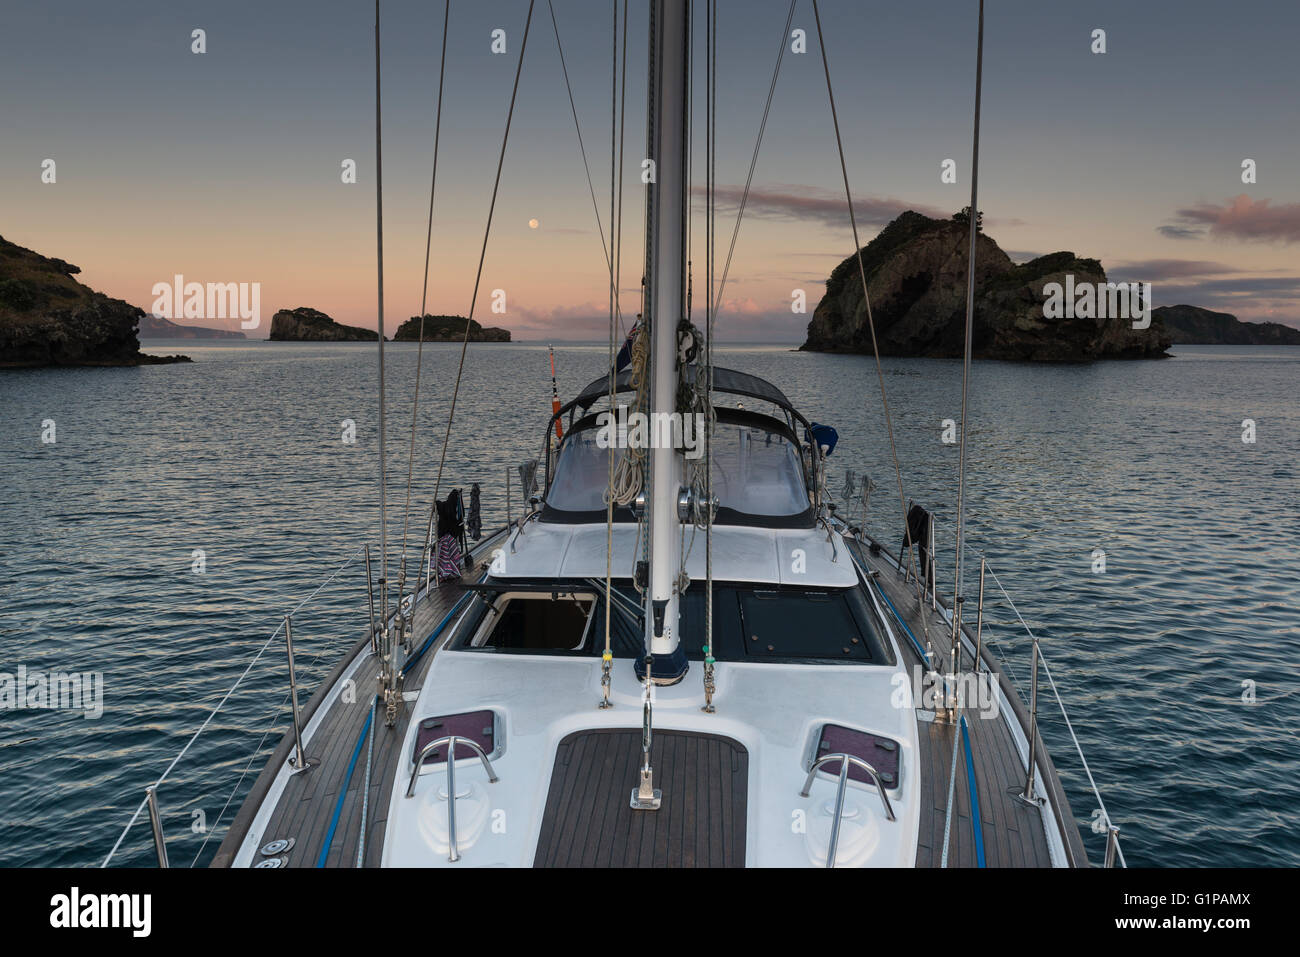 Early morning light and a full moon, yacht at anchor on its own among some of the small islands in the Hauraki Gulf, - Stock Image